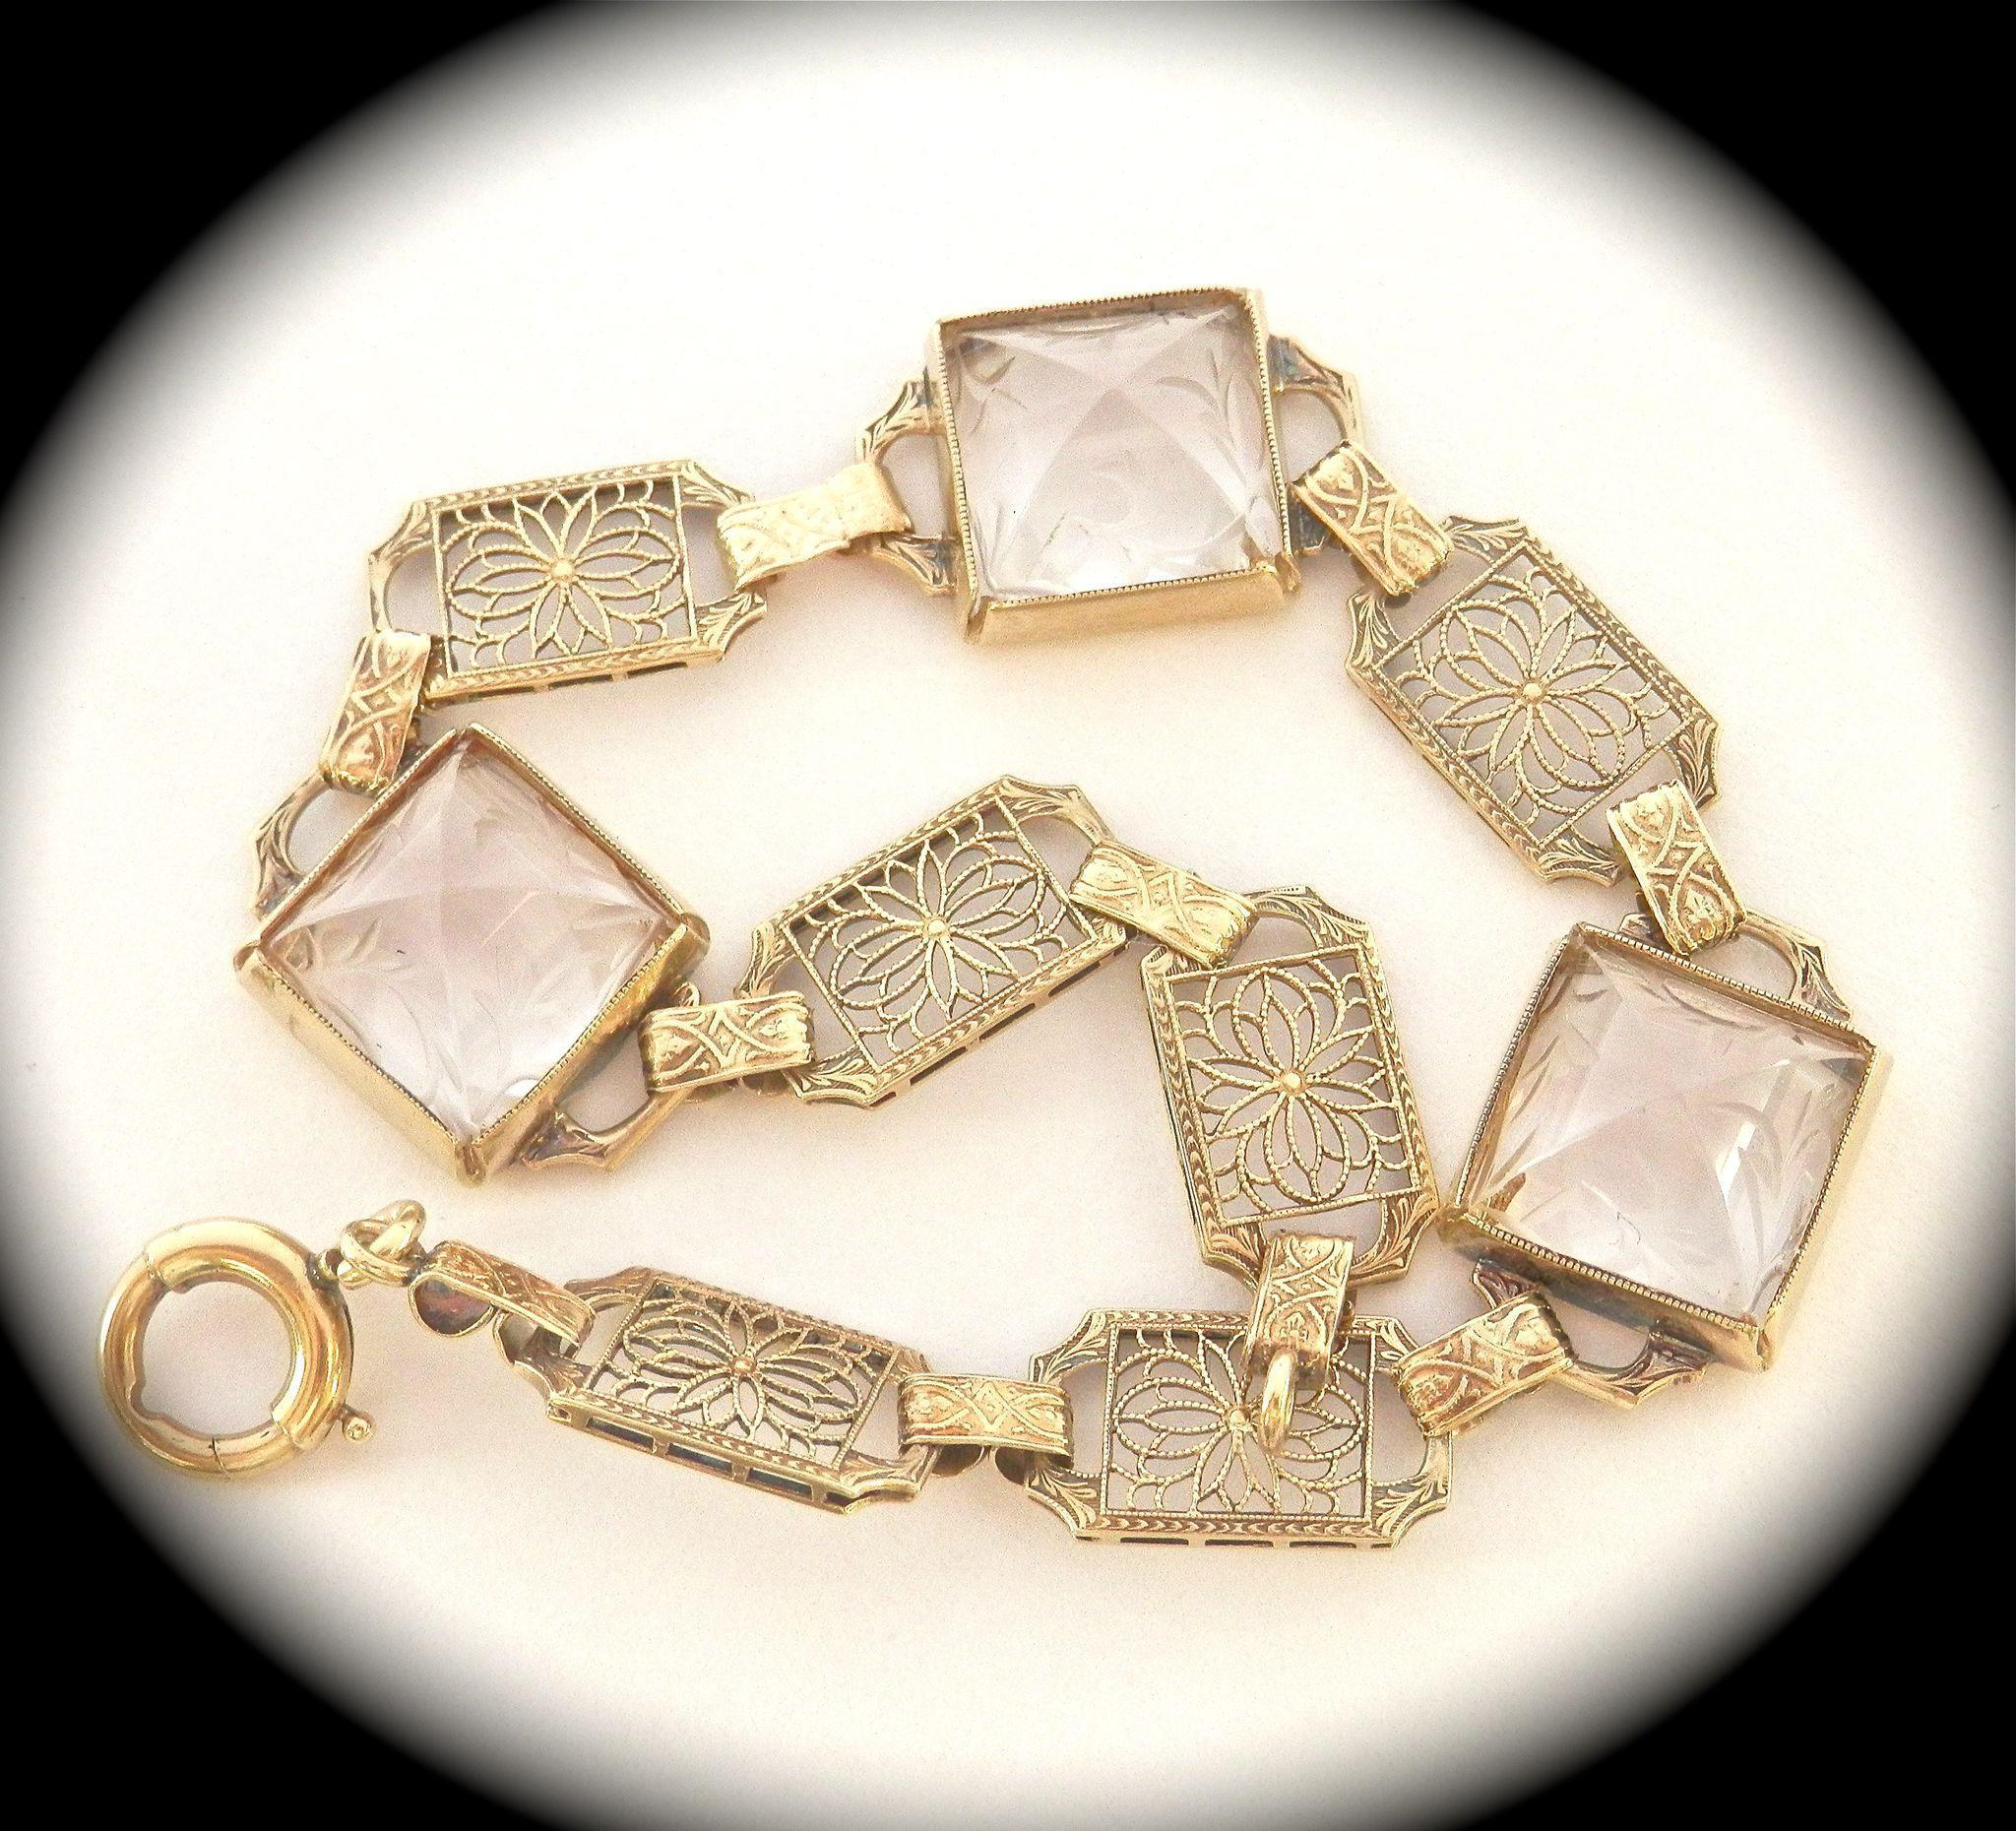 Beautiful Art Deco 14K Gold Filigree Engraved Rock Crystal Bracelet